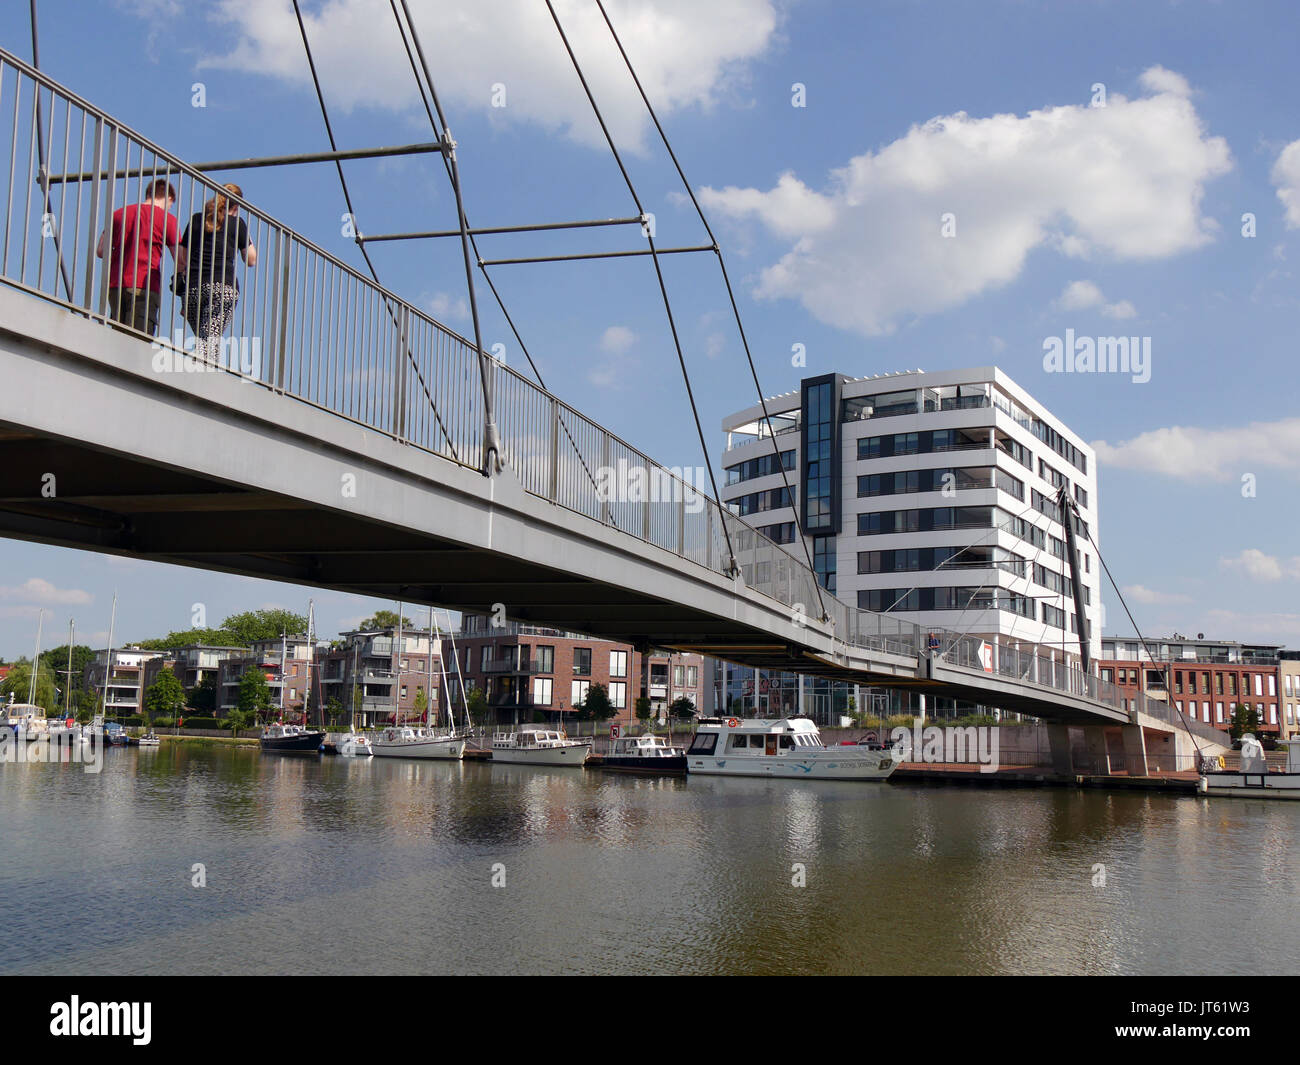 Couple cross the Nesse Bridge in Leer, Germany, The bridge connects the historic city center with the pedestrian zone and crosses the River Leda. - Stock Image